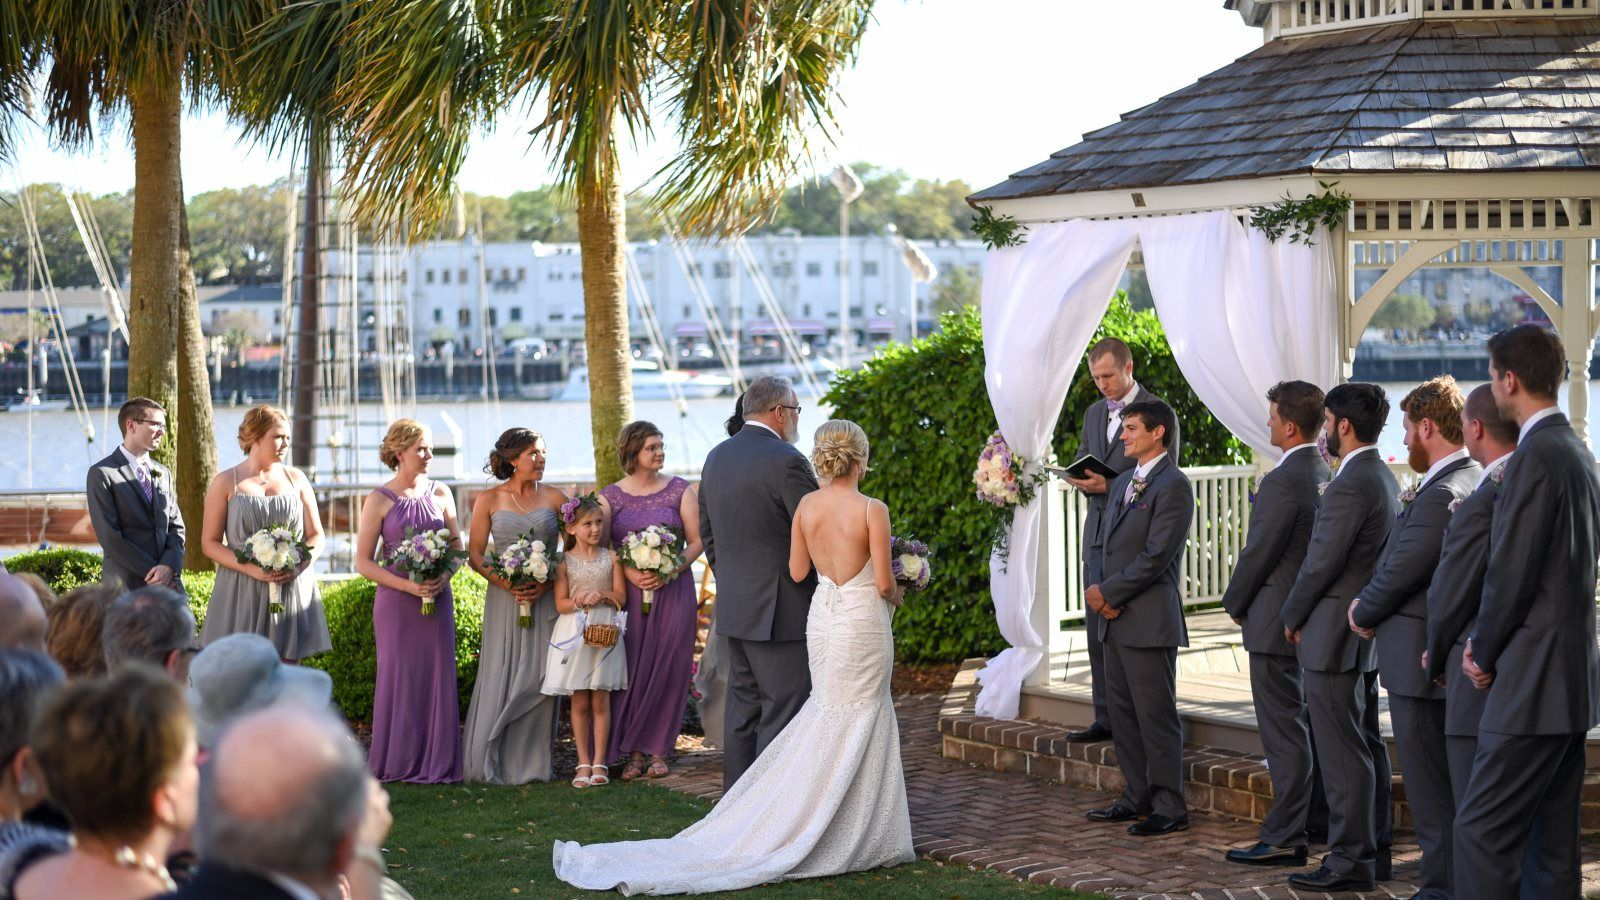 Outdoor Wedding Ceremony: Savannah, GA Wedding Venues